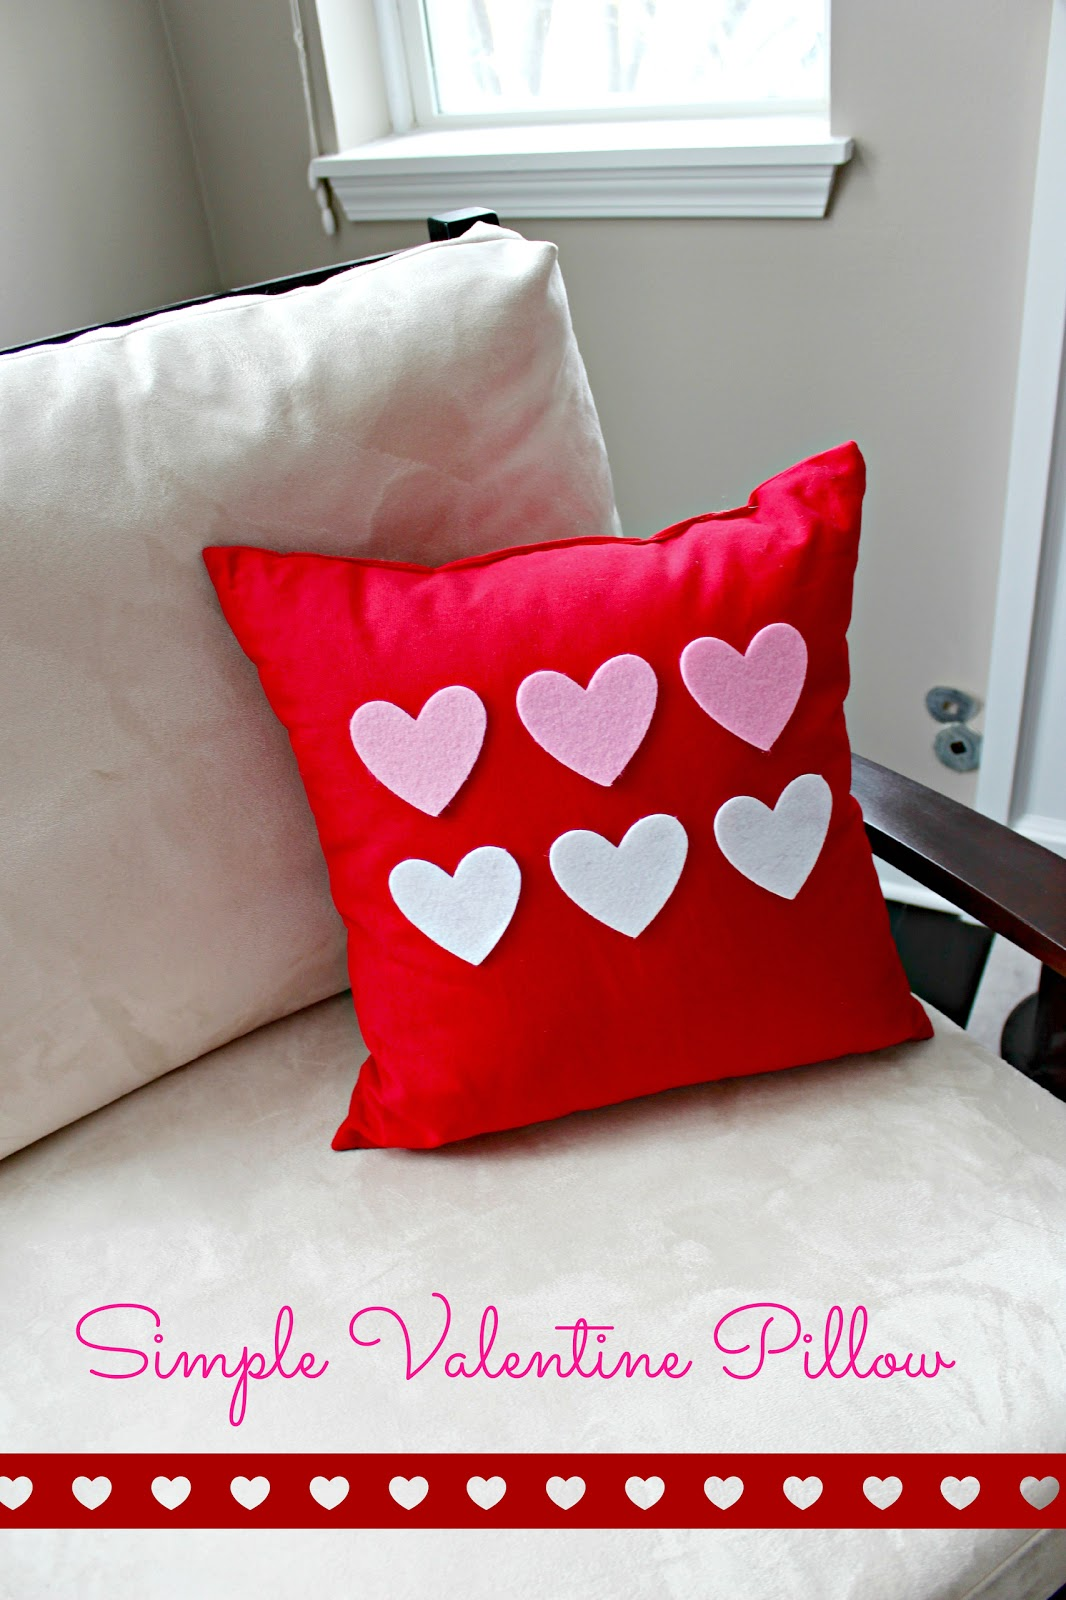 Decorative Valentine Pillows : Simple Valentine Pillow Decor Delightfully Noted